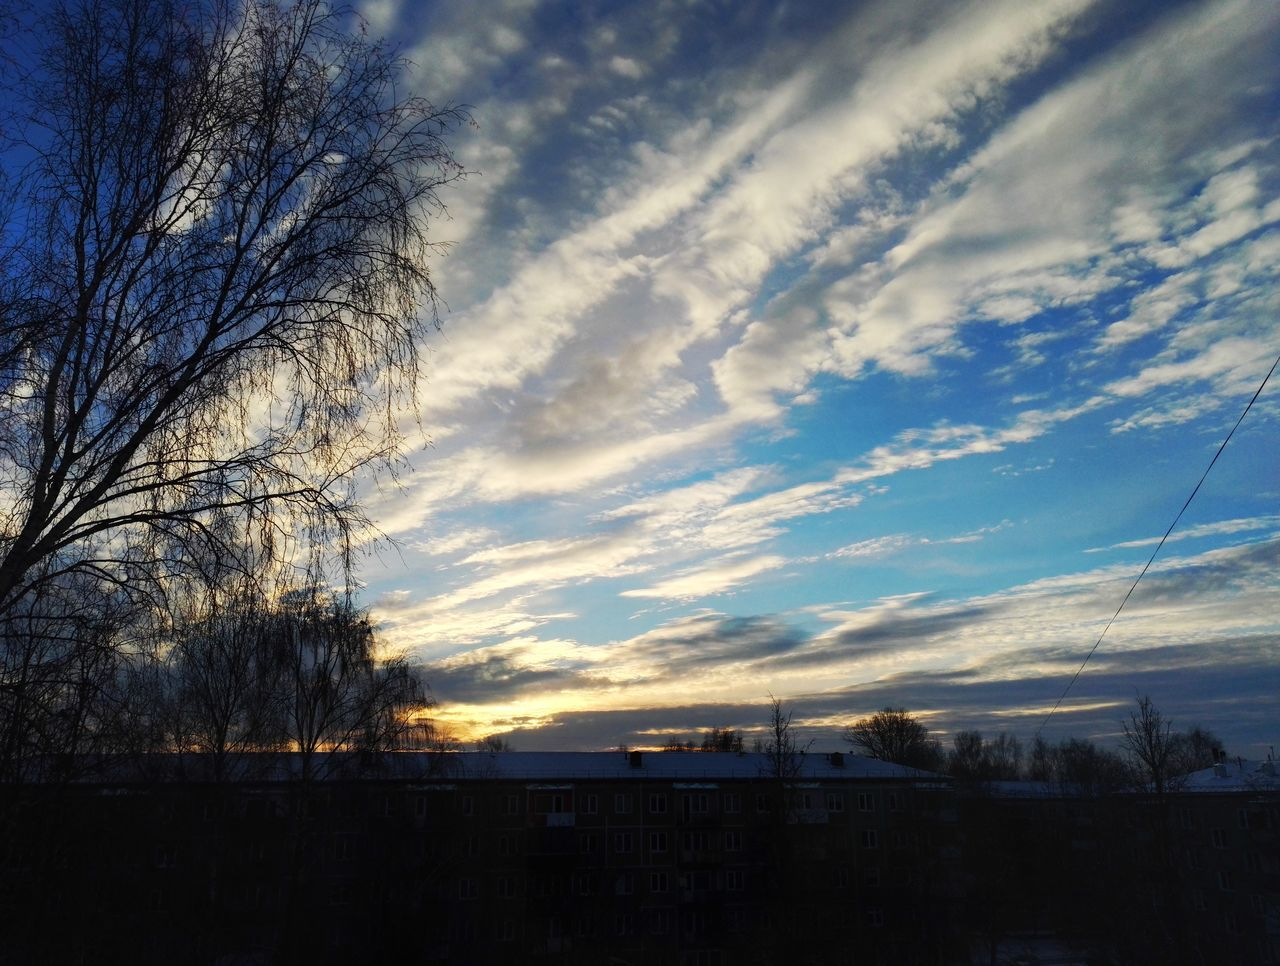 Sunrise Sunrise_Collection Sun Sun_collection Sunlight Sun And Clouds Clouds And Sky Clouds Cloud_collection  Sky_collection Blue Sky Morning Sky Morning Sun View From My Window City Weather Winter Hello World Enjoying Life Cold Temperature Tranquility Tree Beauty In Nature